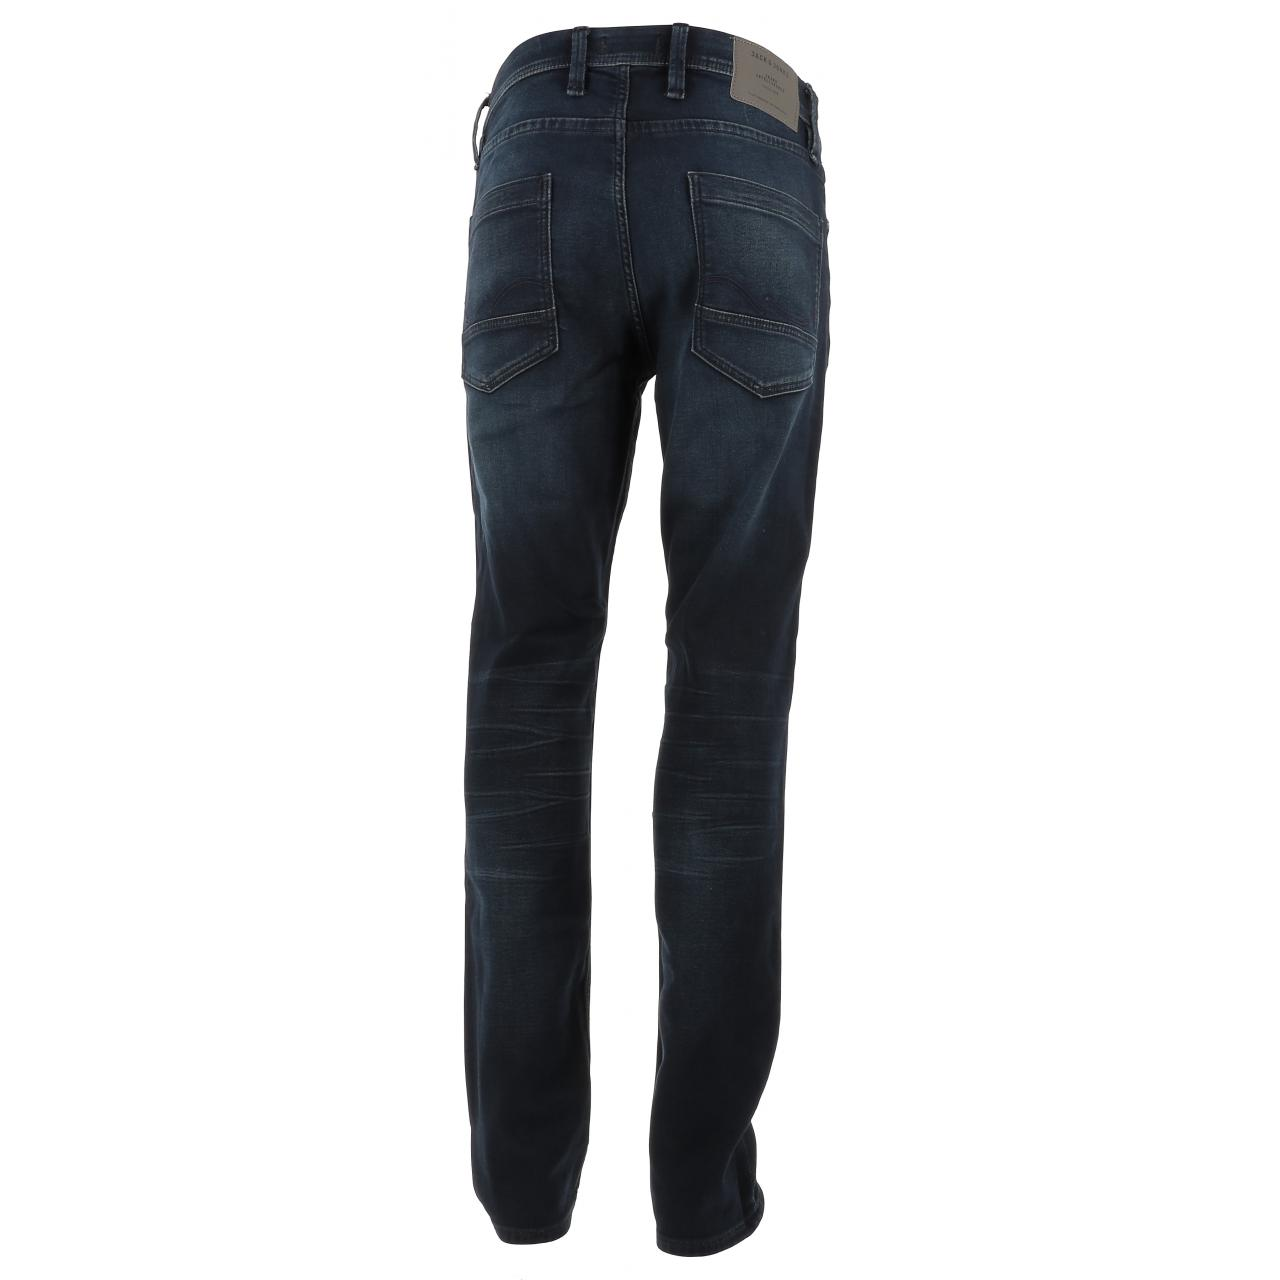 Jeans Slim Blue Jack 12256 And 34 Bleu Pantalon Tim Jones Denim Neuf 47qBSwwC